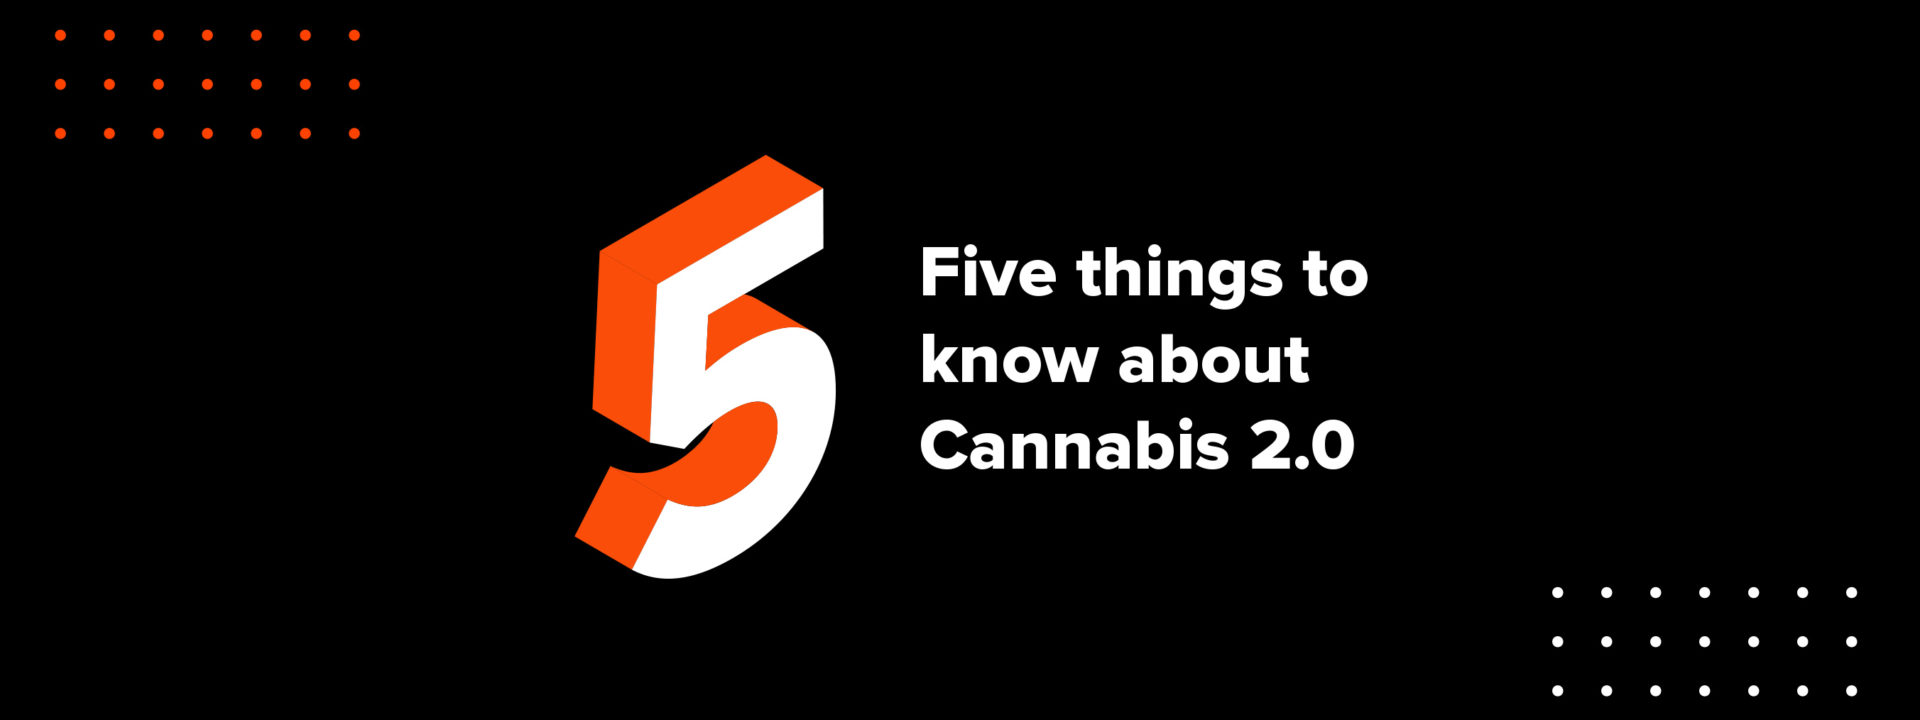 5 Things To Know About Cannabis 2.0